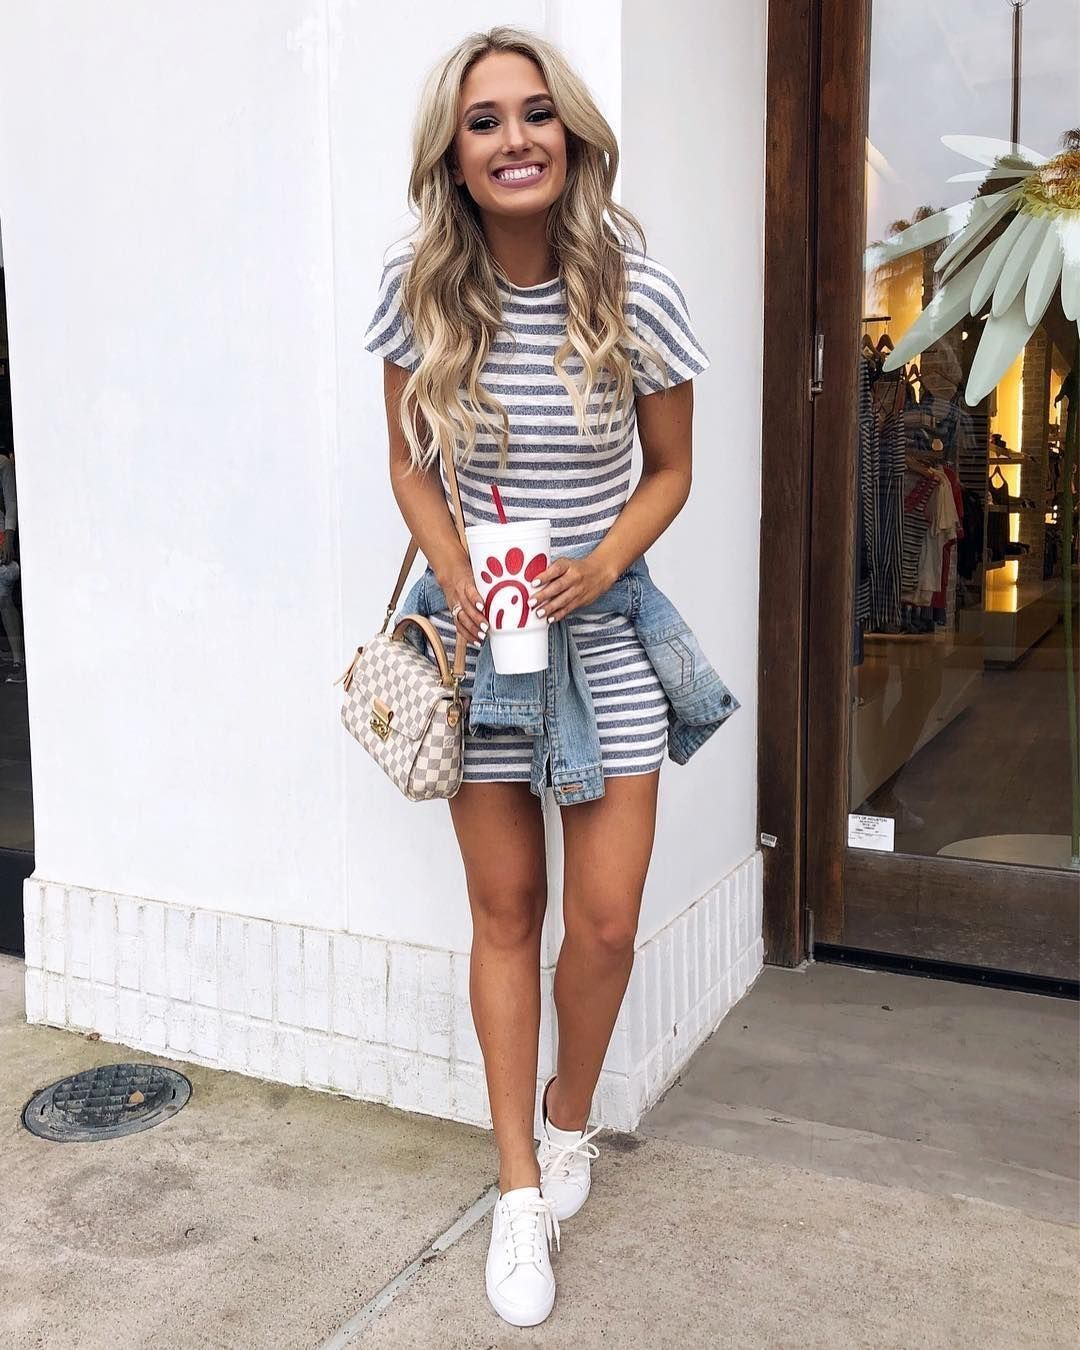 48 Nice Ideas To Wear Skirts With Sneakers Summer Outfits Women Summer Outfits Women 30s Vegas Outfit [ 1350 x 1080 Pixel ]